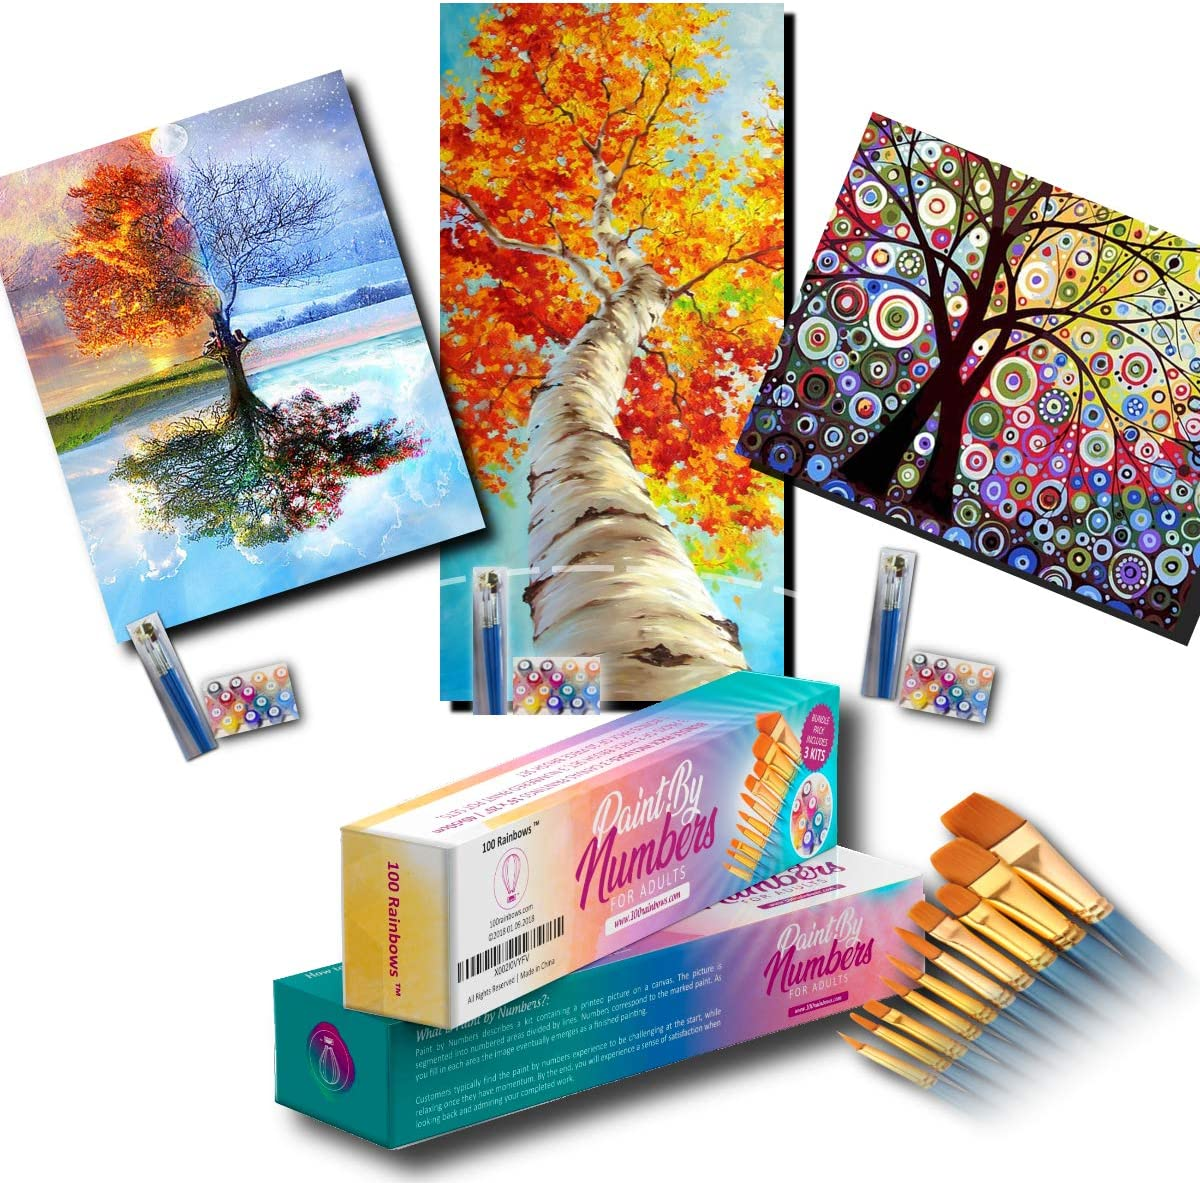 100 Rainbows Paint by Numbers for Adults. Large Beginner Kits (3 PACK) best for Adult who enjoys Painting by Number Activities. Custom Kit contains 3 Tree DIY Canvas Print and Paintings (16